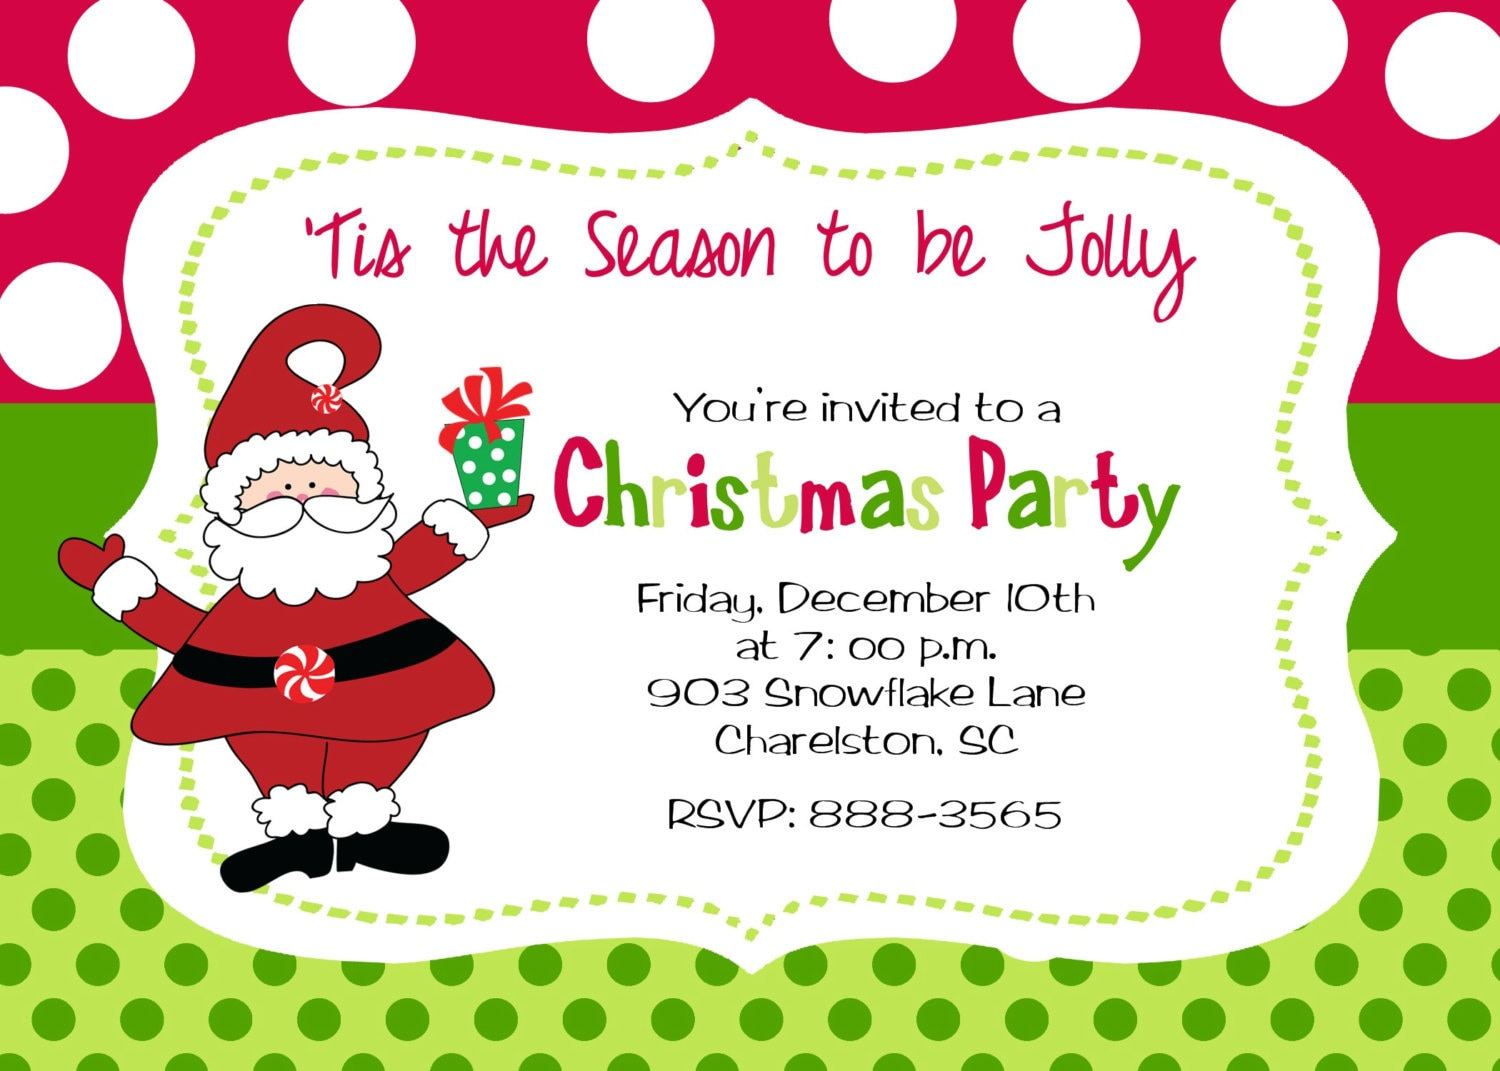 Christmas Party Invitation by stickerchic on Etsy: https://www.etsy.com/listing/86455648/christmas-party-invitation